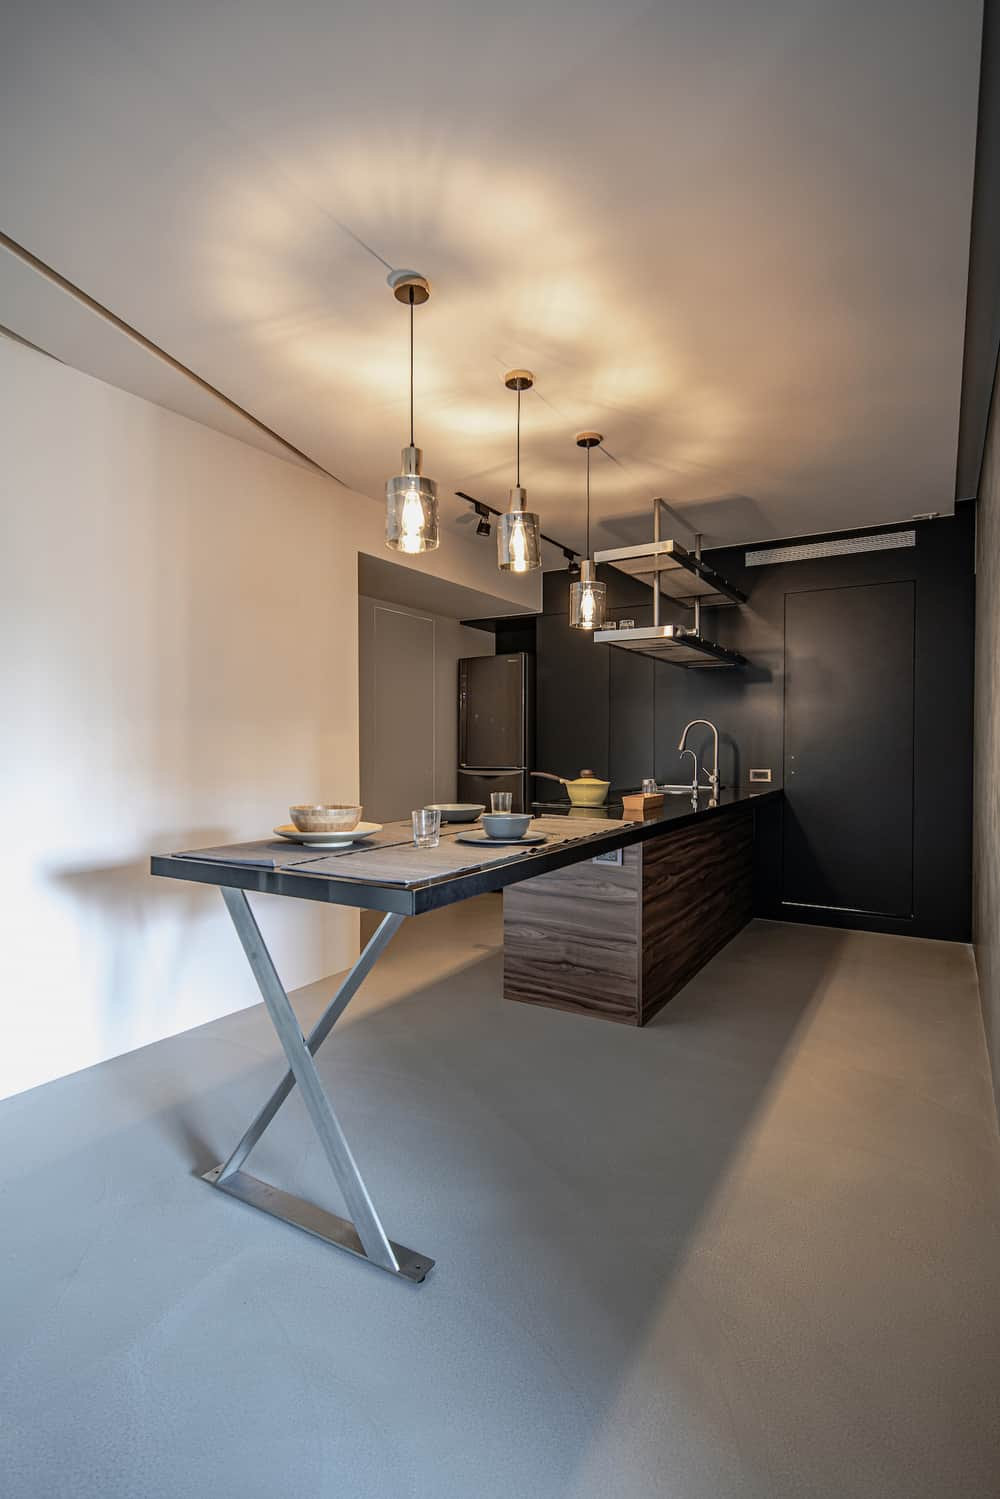 This is a side view of the large kitchen island with a set of modern cabinetry at the far end that has a black tone that makes the stainless steel fridge stand out.